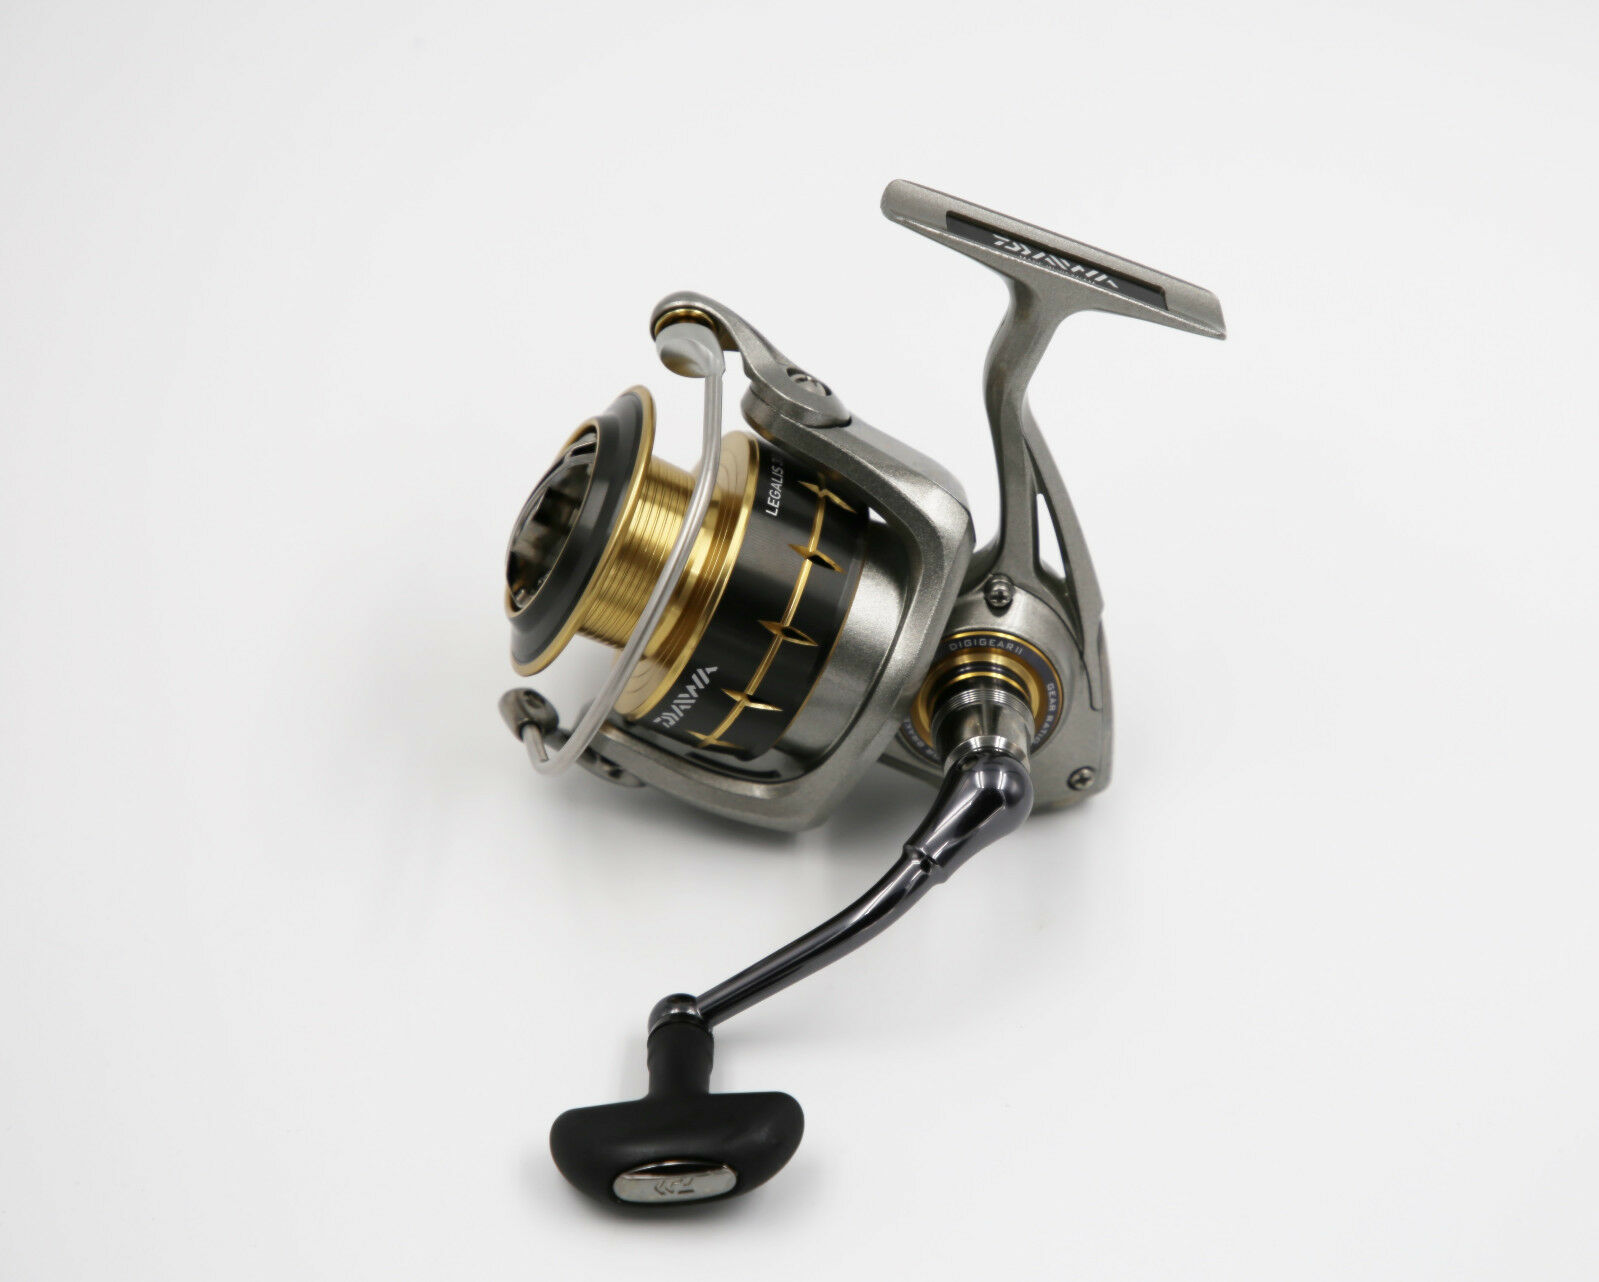 DAIWA 12 legalis 3520pe-sh spinnrolle spinnfischrolle frontbremsrolle